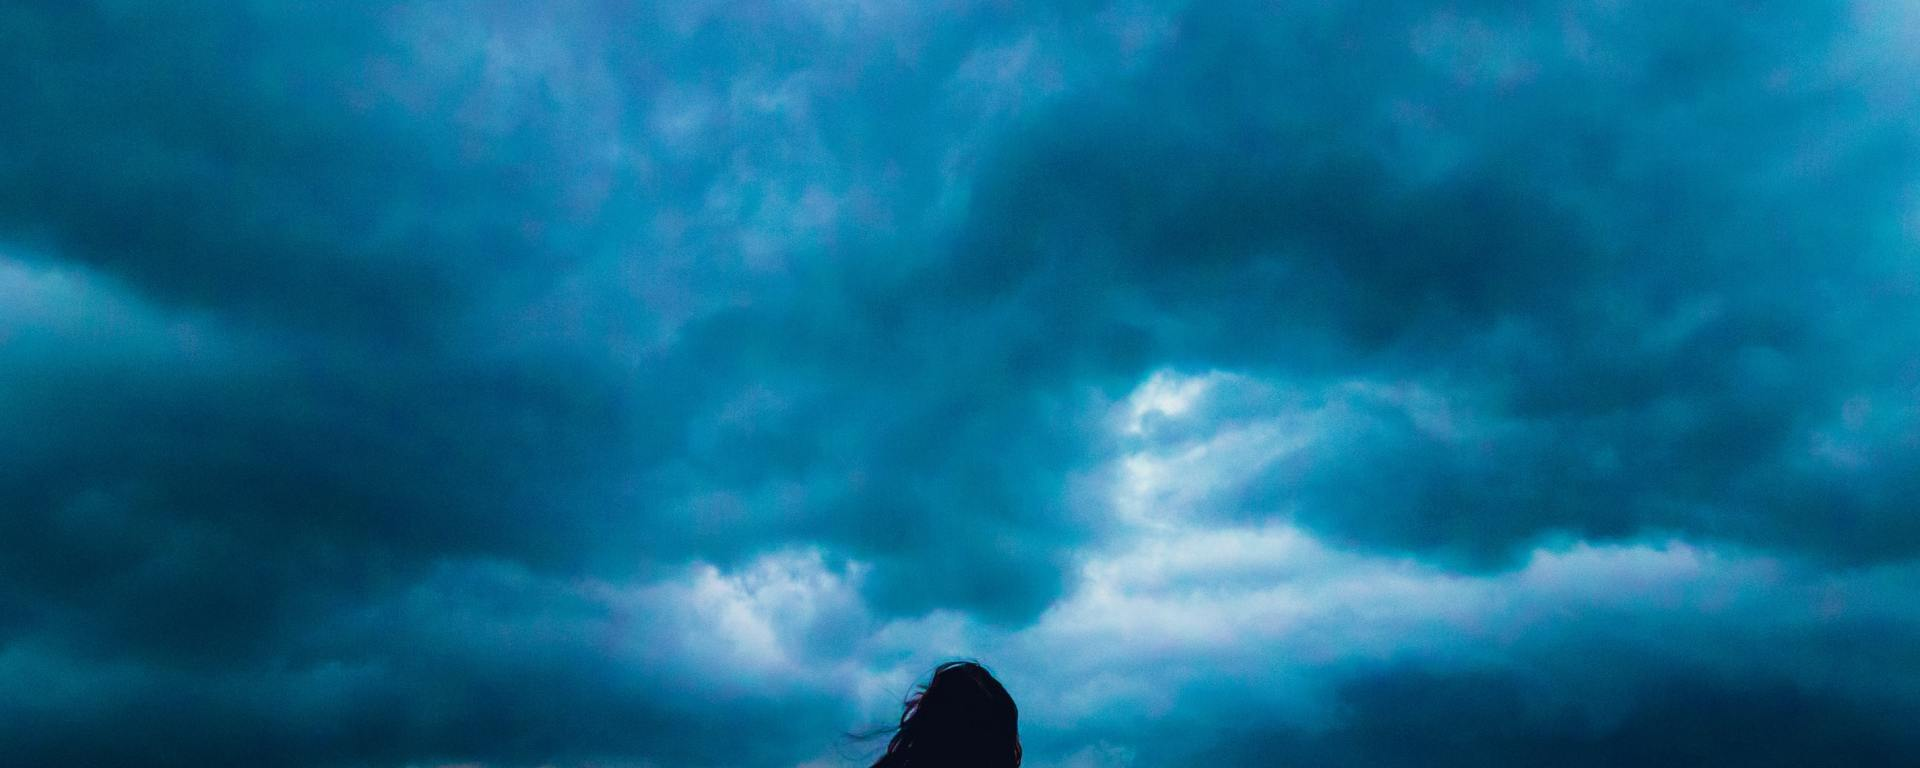 woman looking forward at dark blue storm clouds